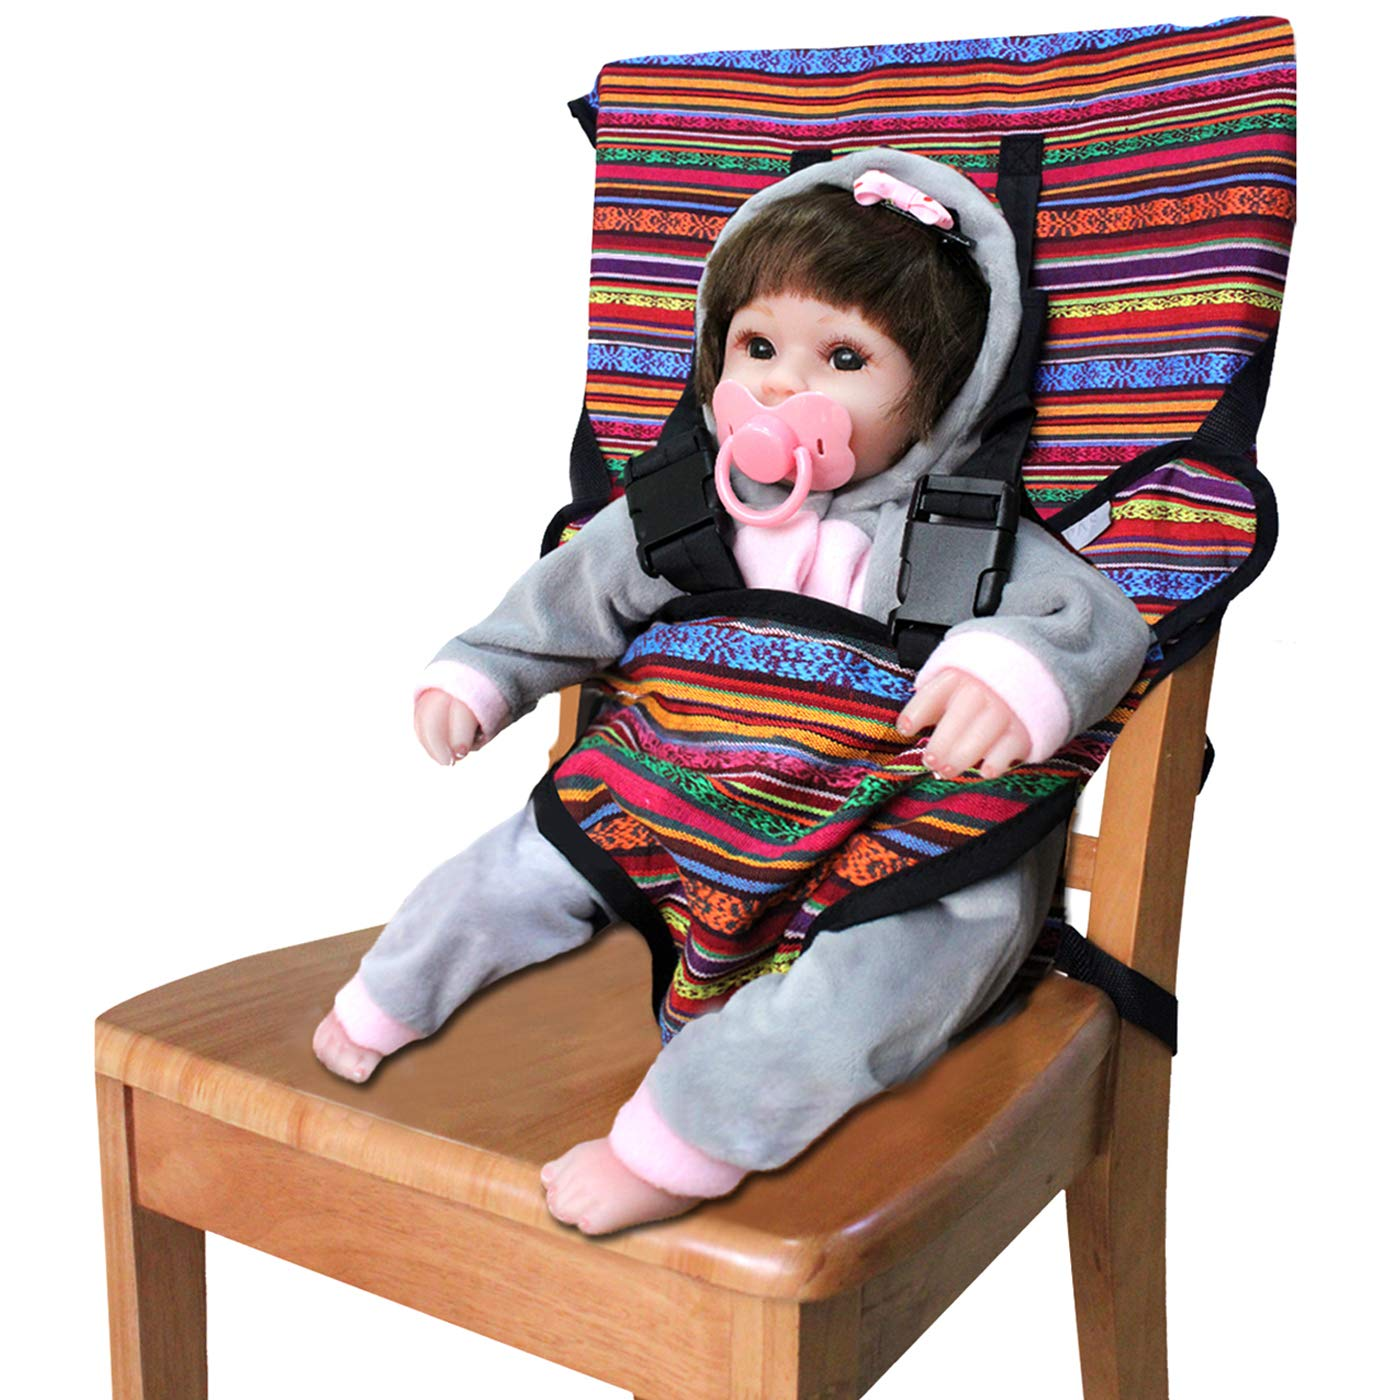 Portable Infant Safety Easy Seat, Travel High Chair Baby Feeding Booster Safety Seat, Soft Safety Chair Belt for Toddlers and Children